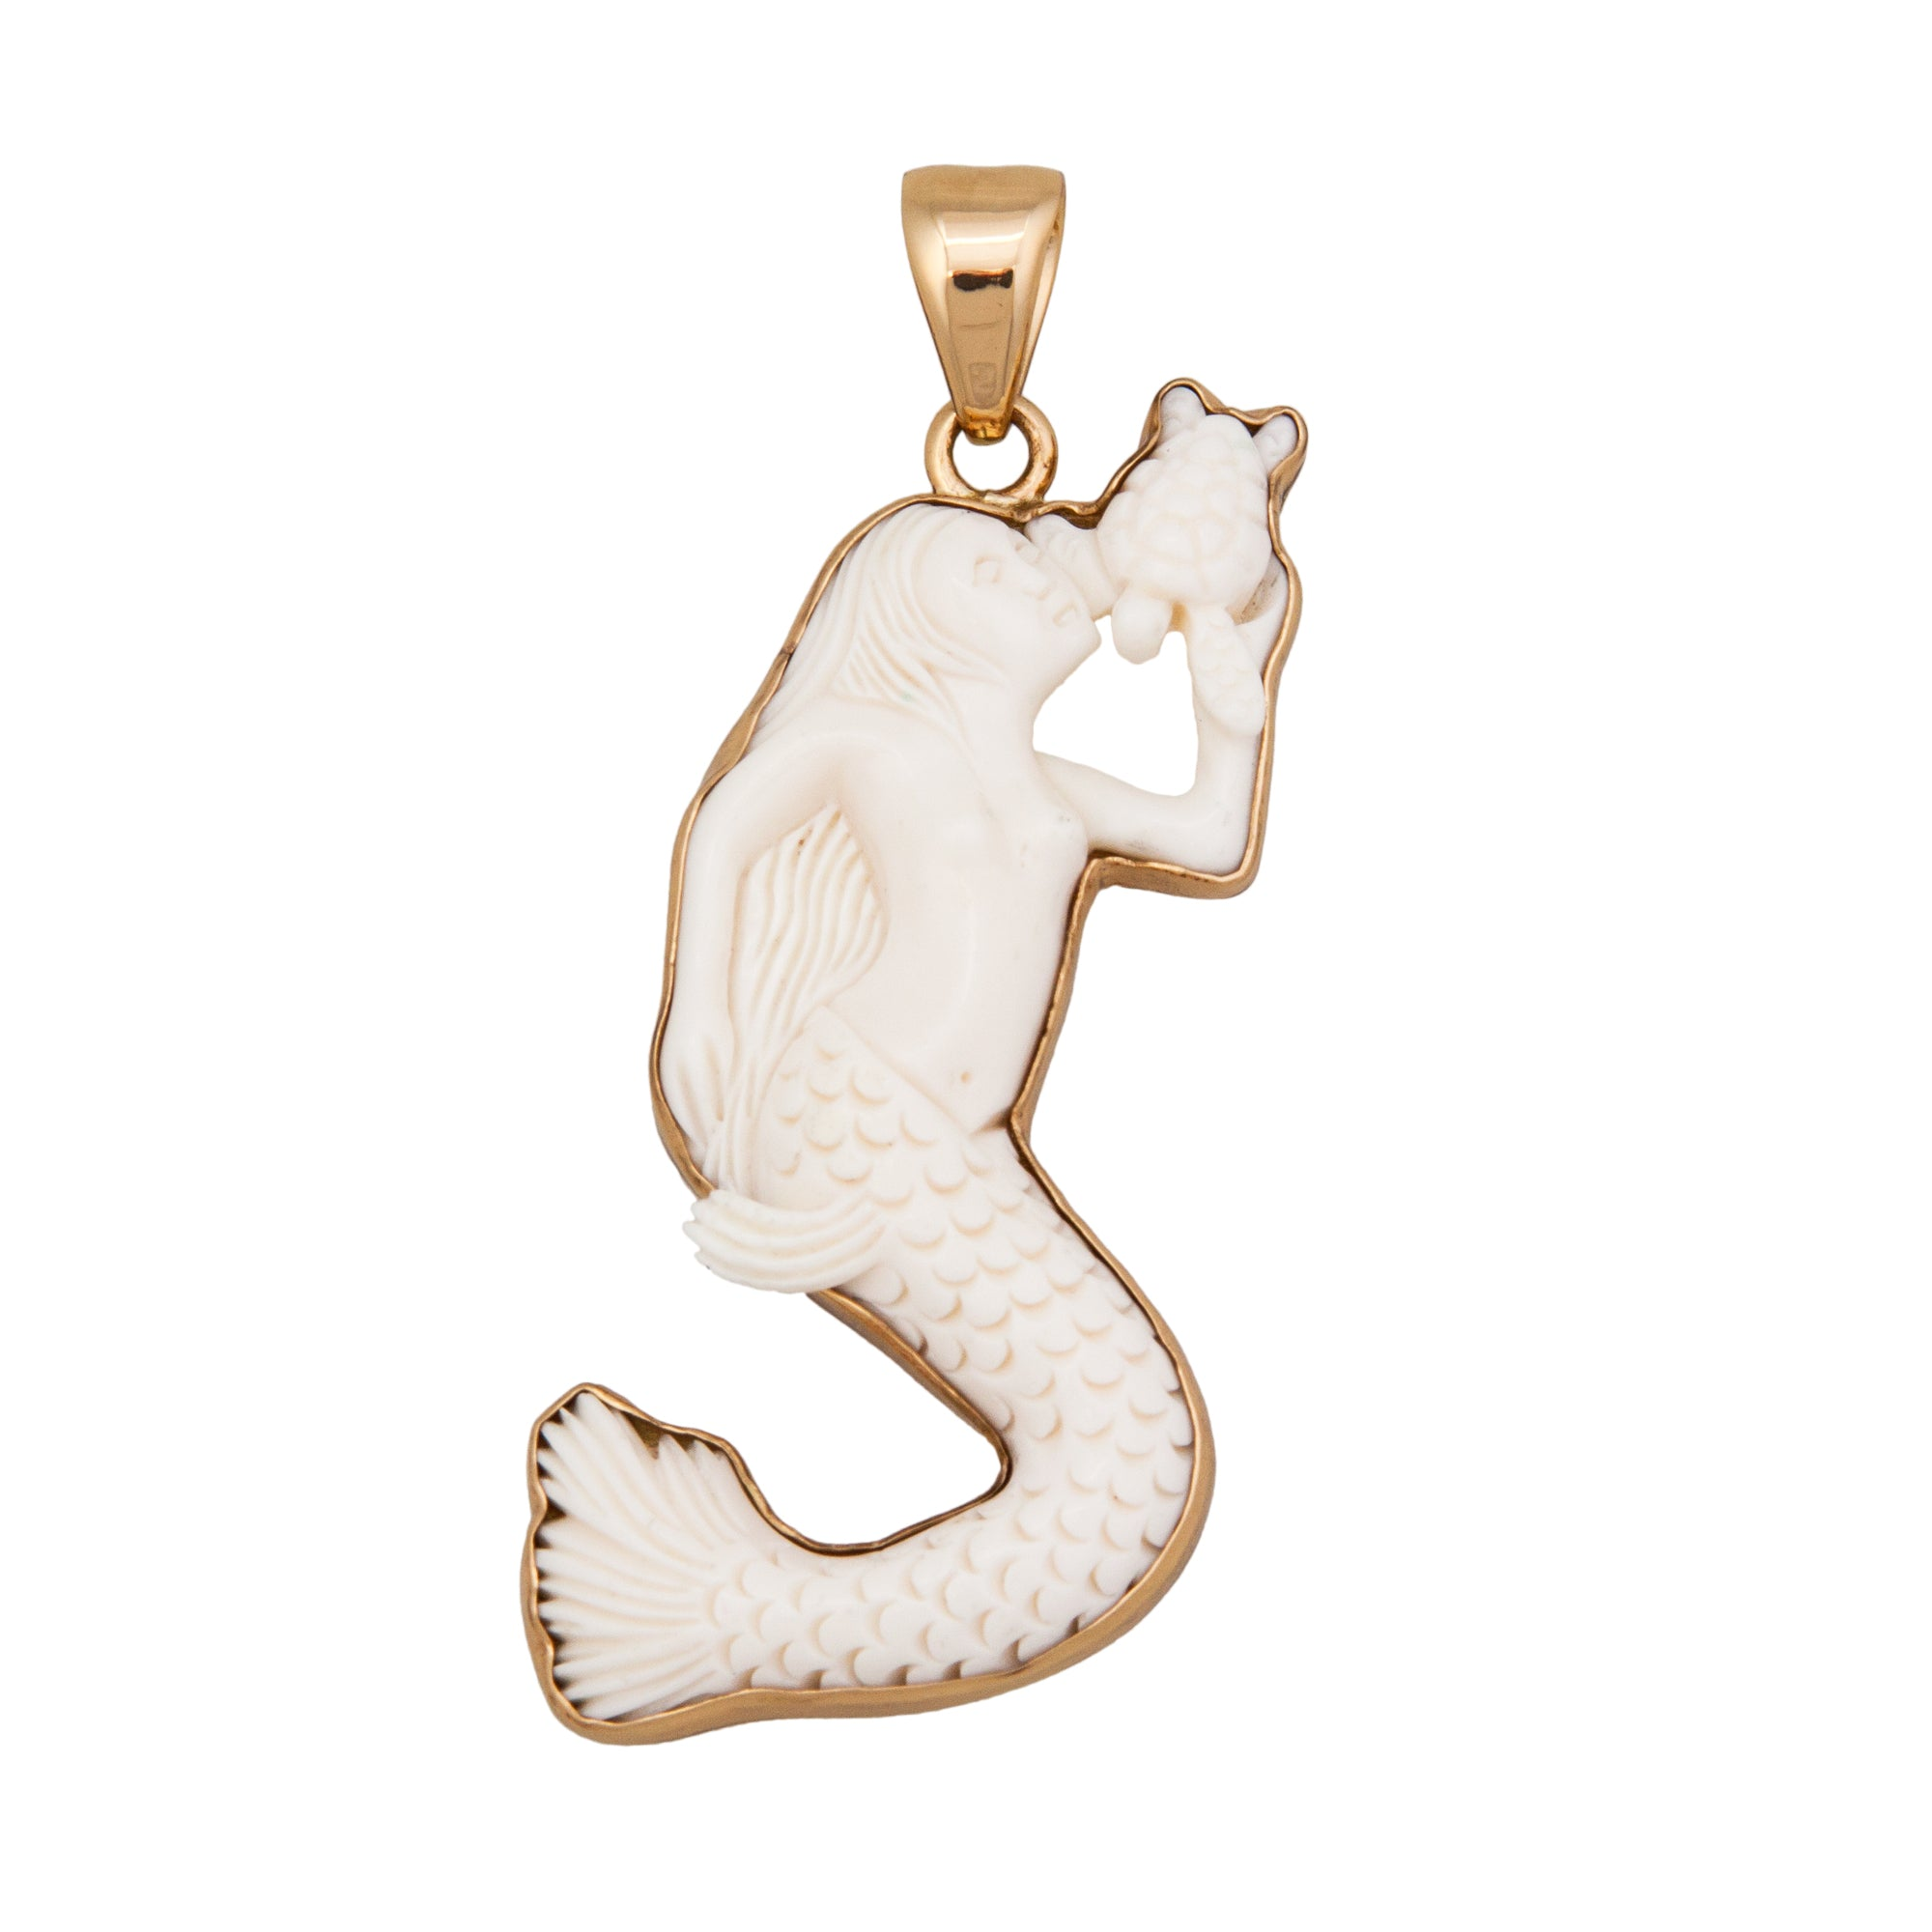 Alchemia Bone Mermaid Pendant | Charles Albert Jewelry